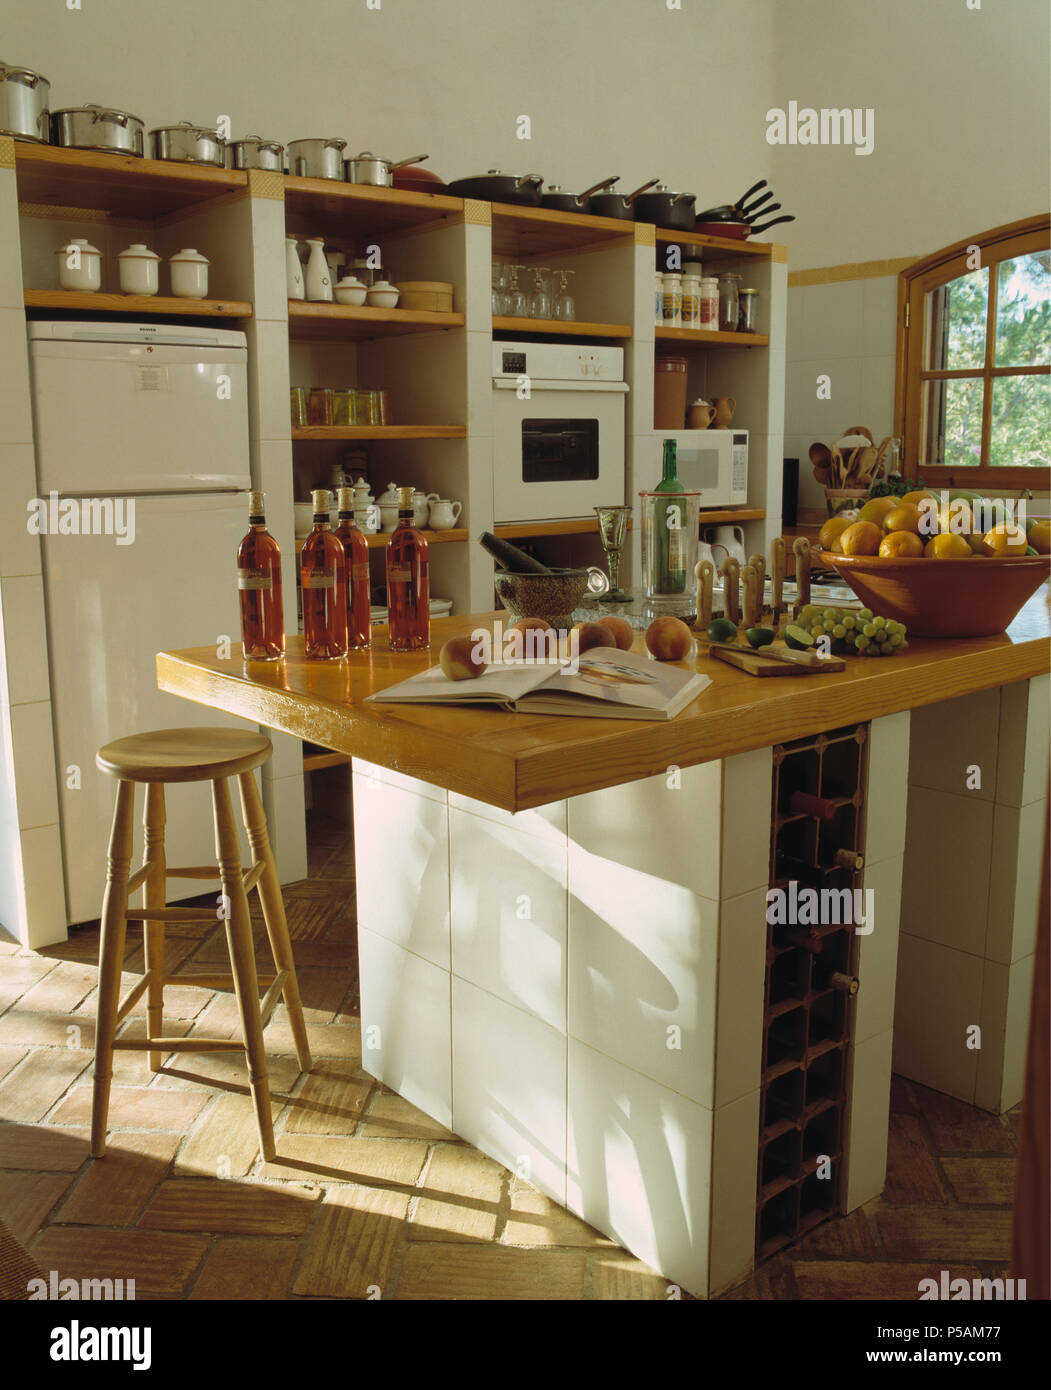 Bottles of oil on wooden worktop of island unit in Greek coastal kitchen with brick flooring - Stock Image